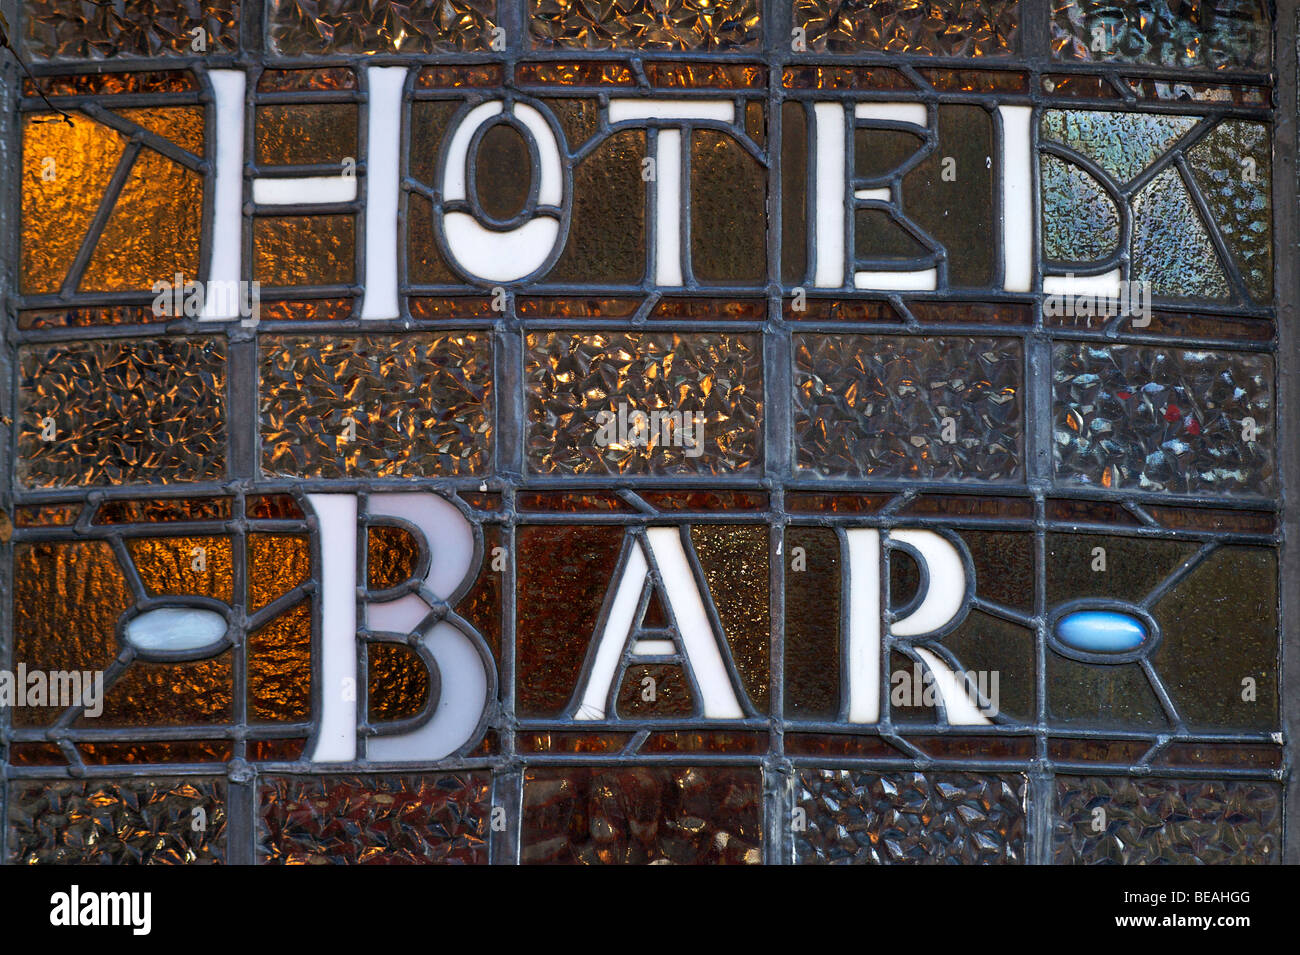 HOTEL BAR. Leaded window sign, Brighton, England - Stock Image